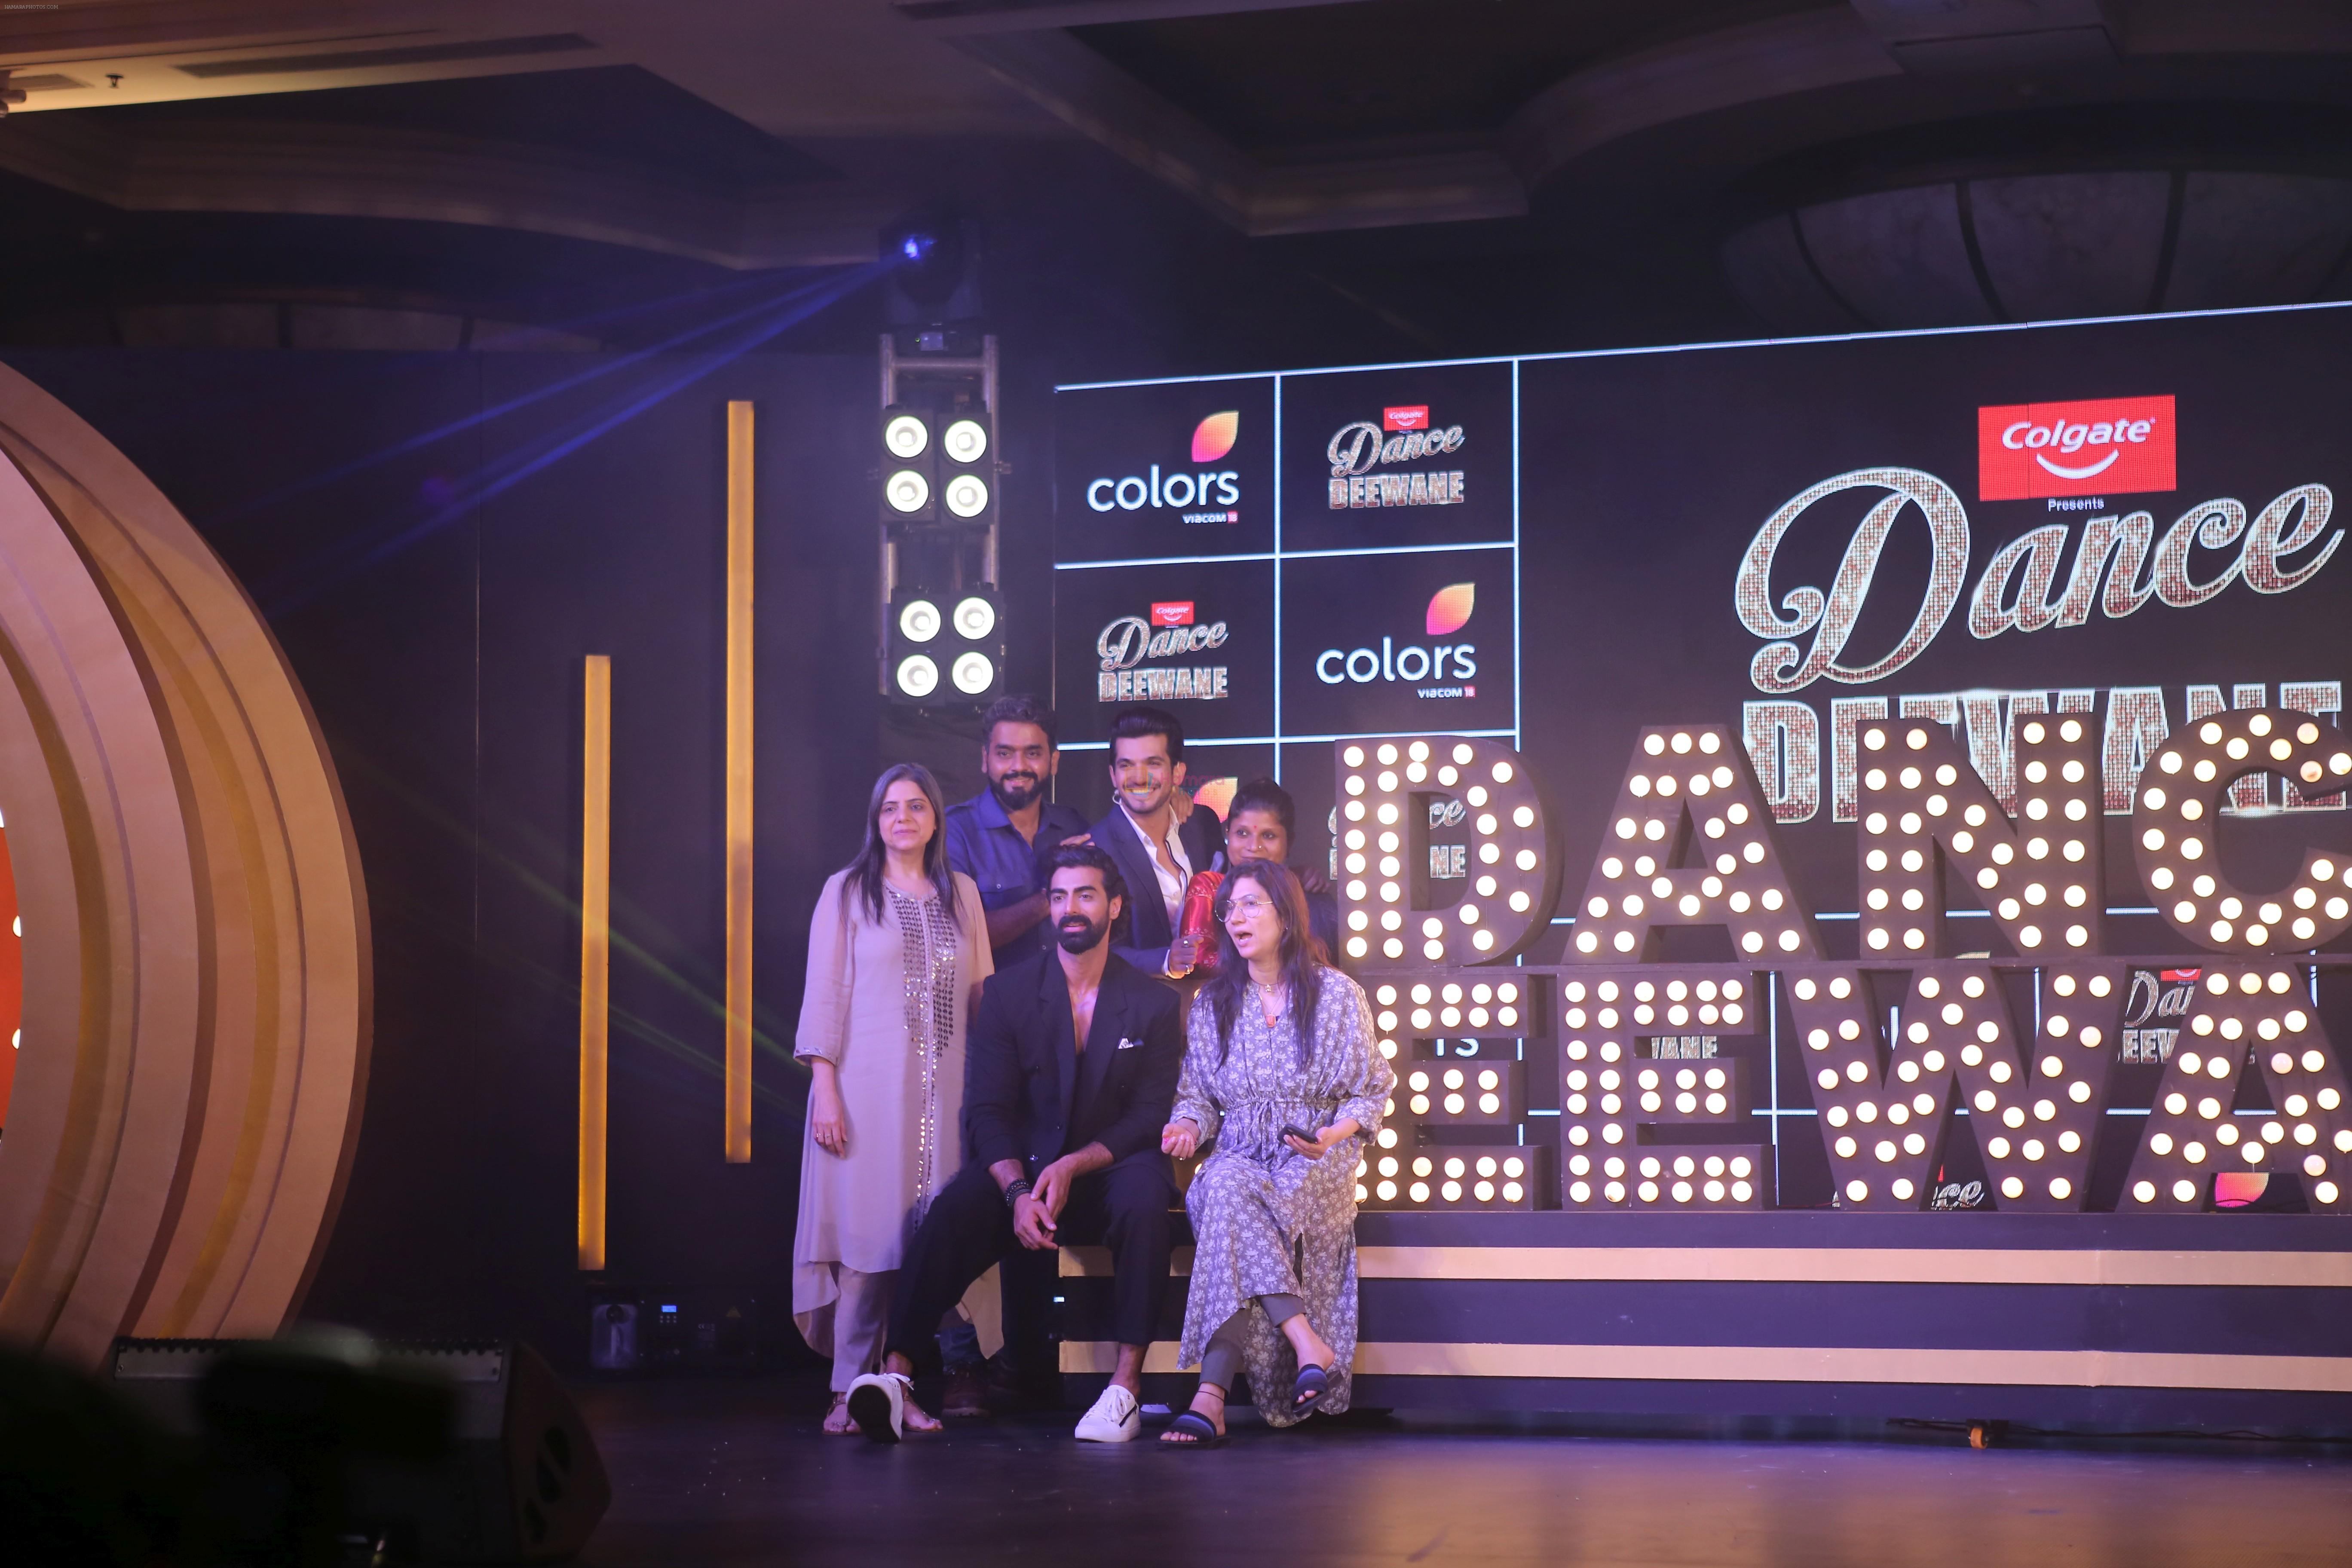 Madhuri Dixit, Shashank Khaitan & Tushar Kalia at the launch of colors show Dance Deewane at jw marriott juhu on 26th May 2019